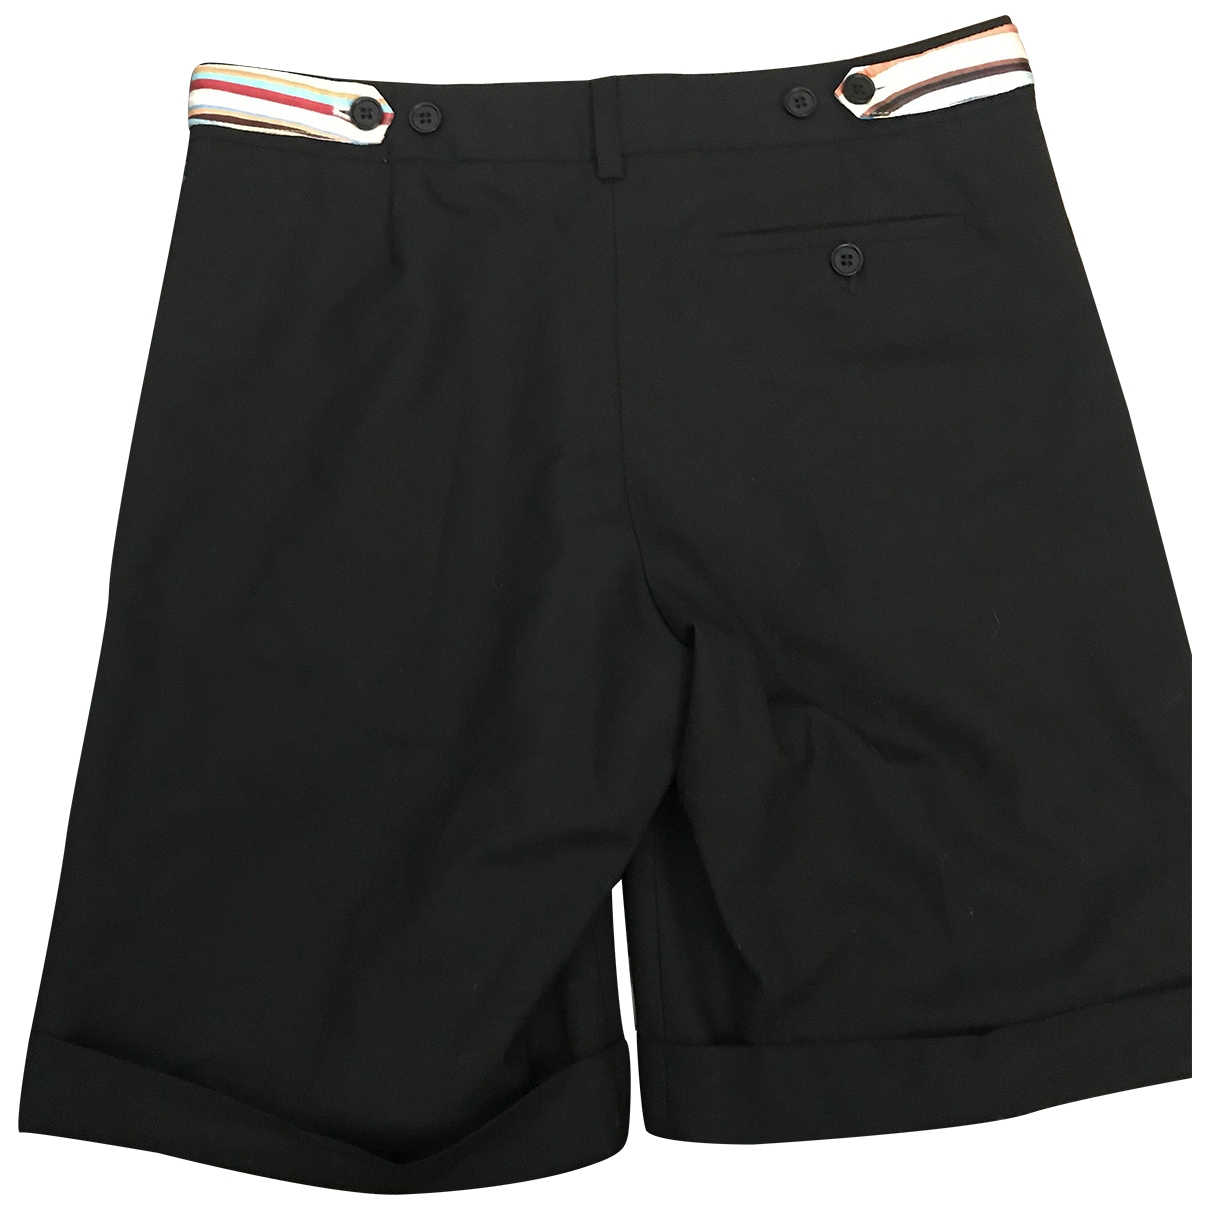 Bermudas de Lana Paul Smith